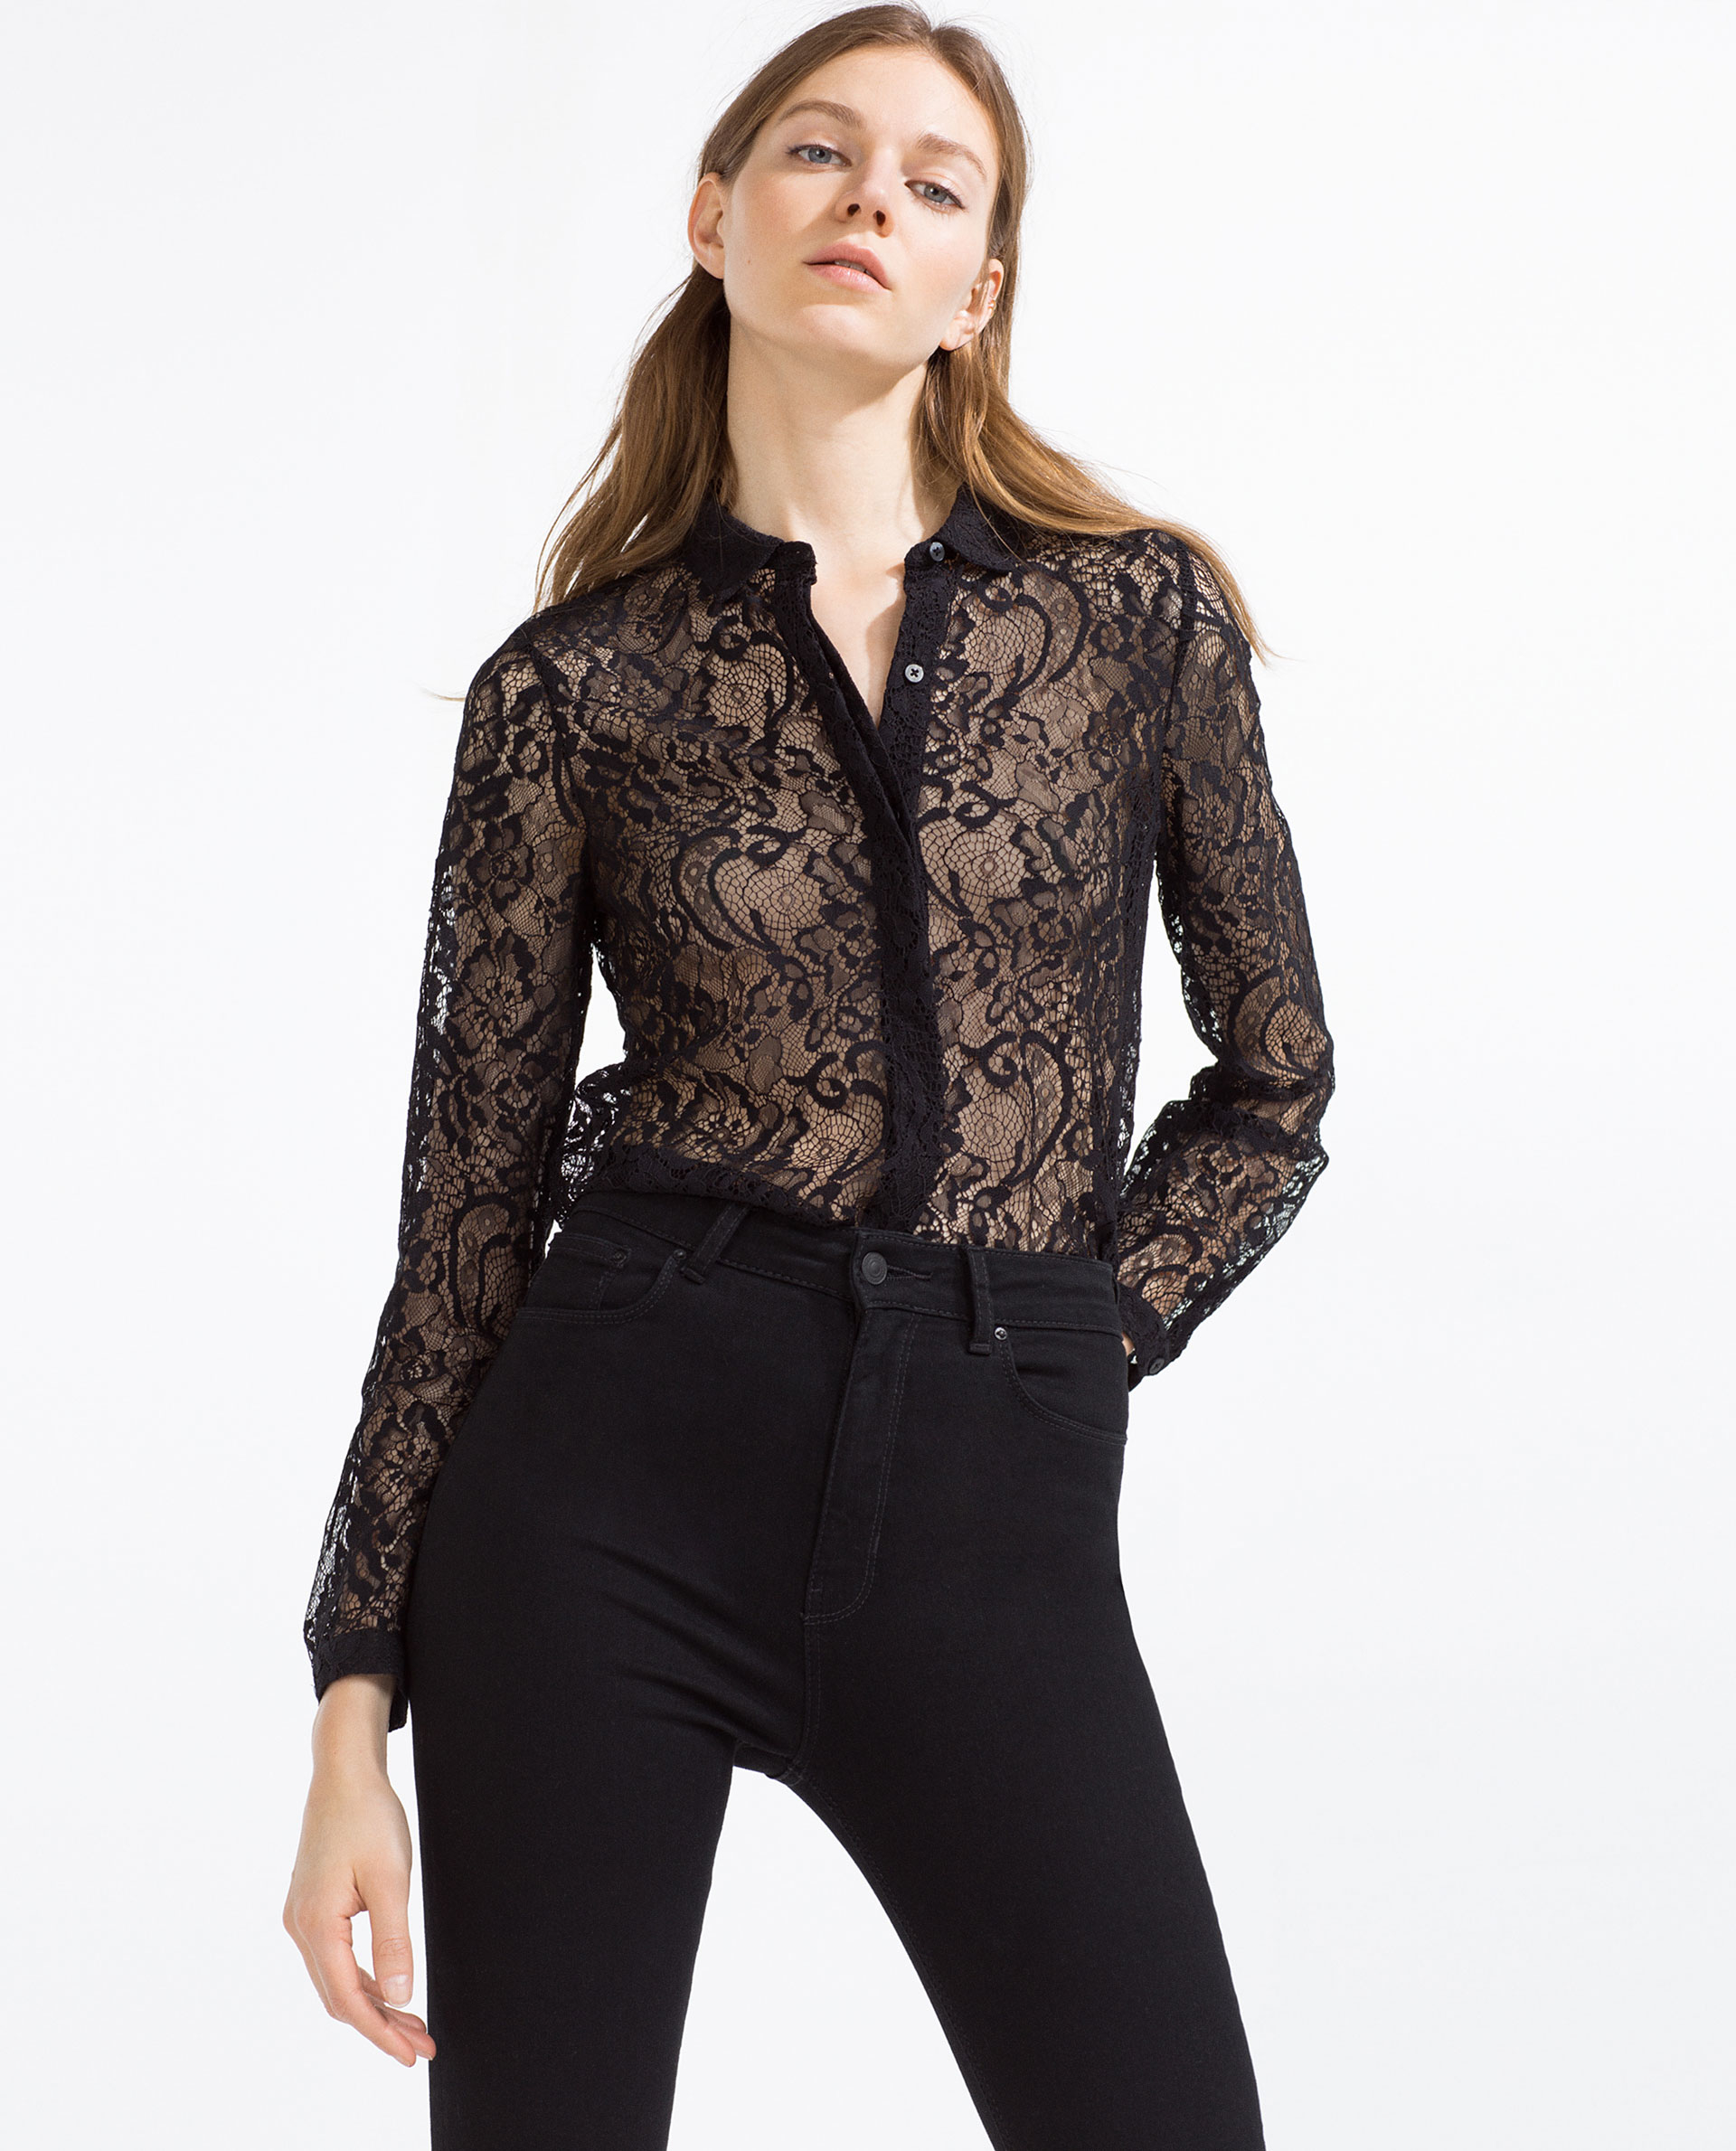 f5d5874406a1bd Black Lace Tops Zara